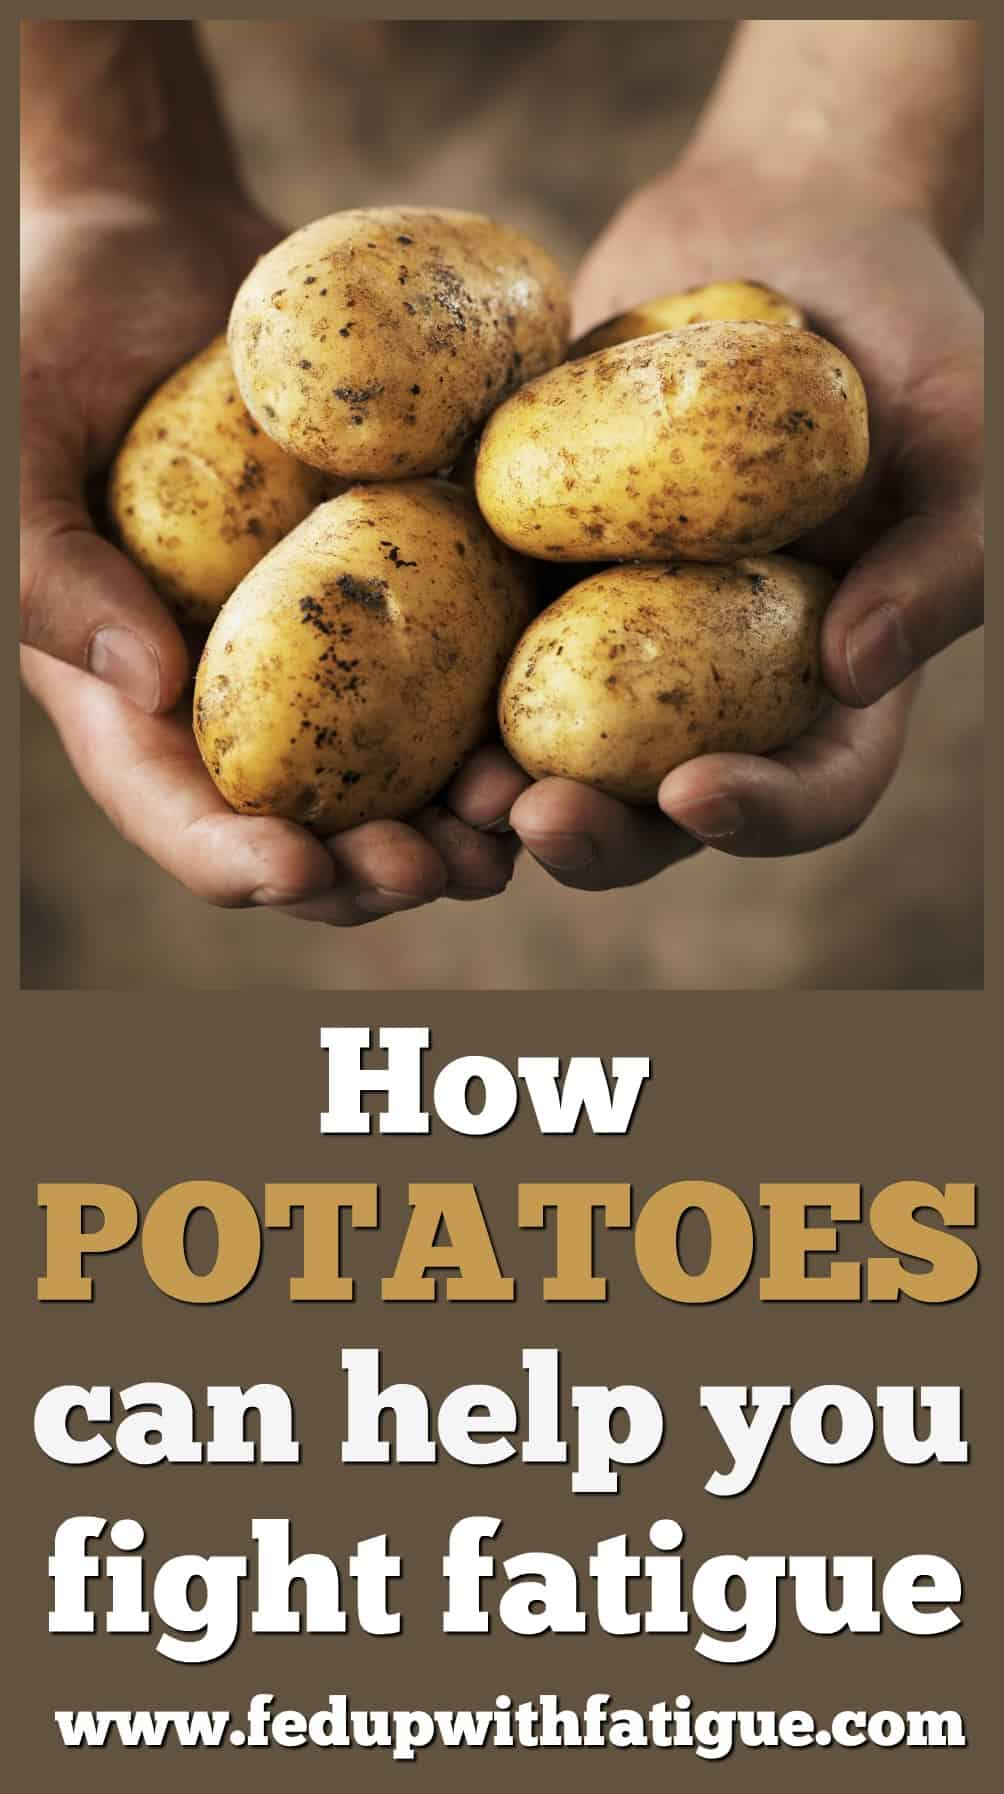 How potatoes can help you fight fatigue   Fed Up with Fatigue